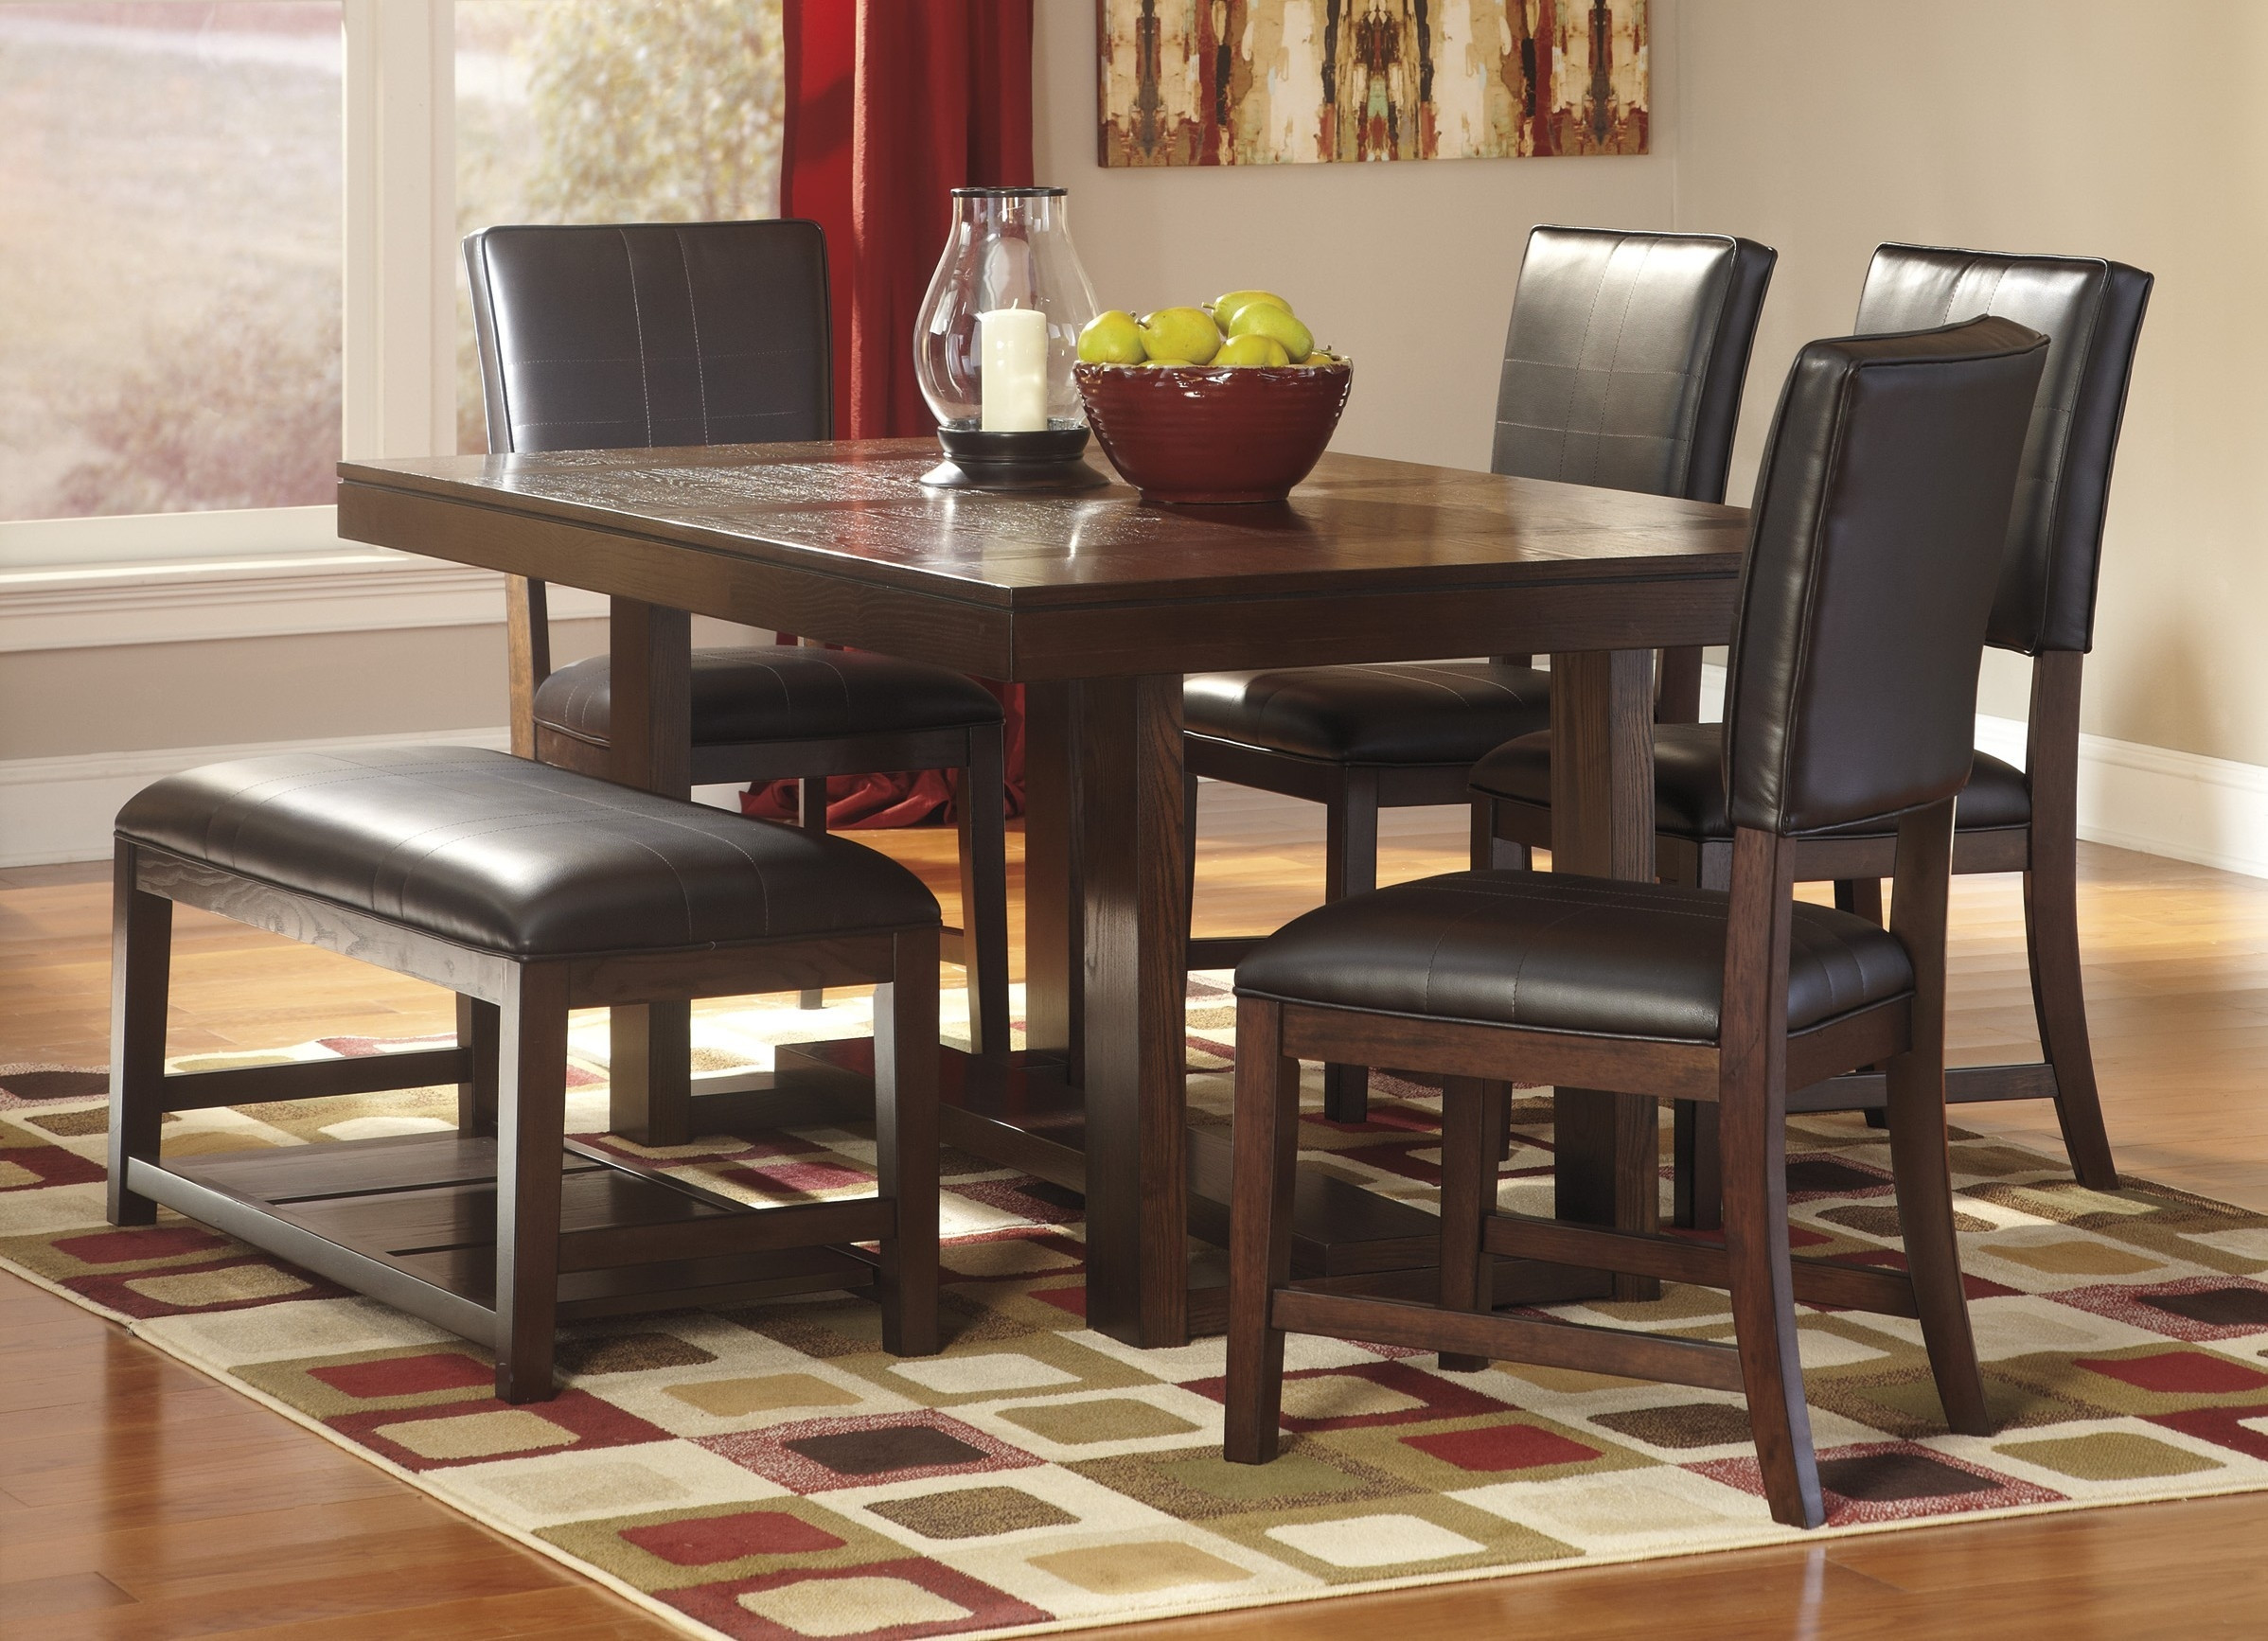 Best ideas about Ashley Furniture Dining Table . Save or Pin 45 Ashley Furniture Dining Table Sets Ashley Furniture Now.